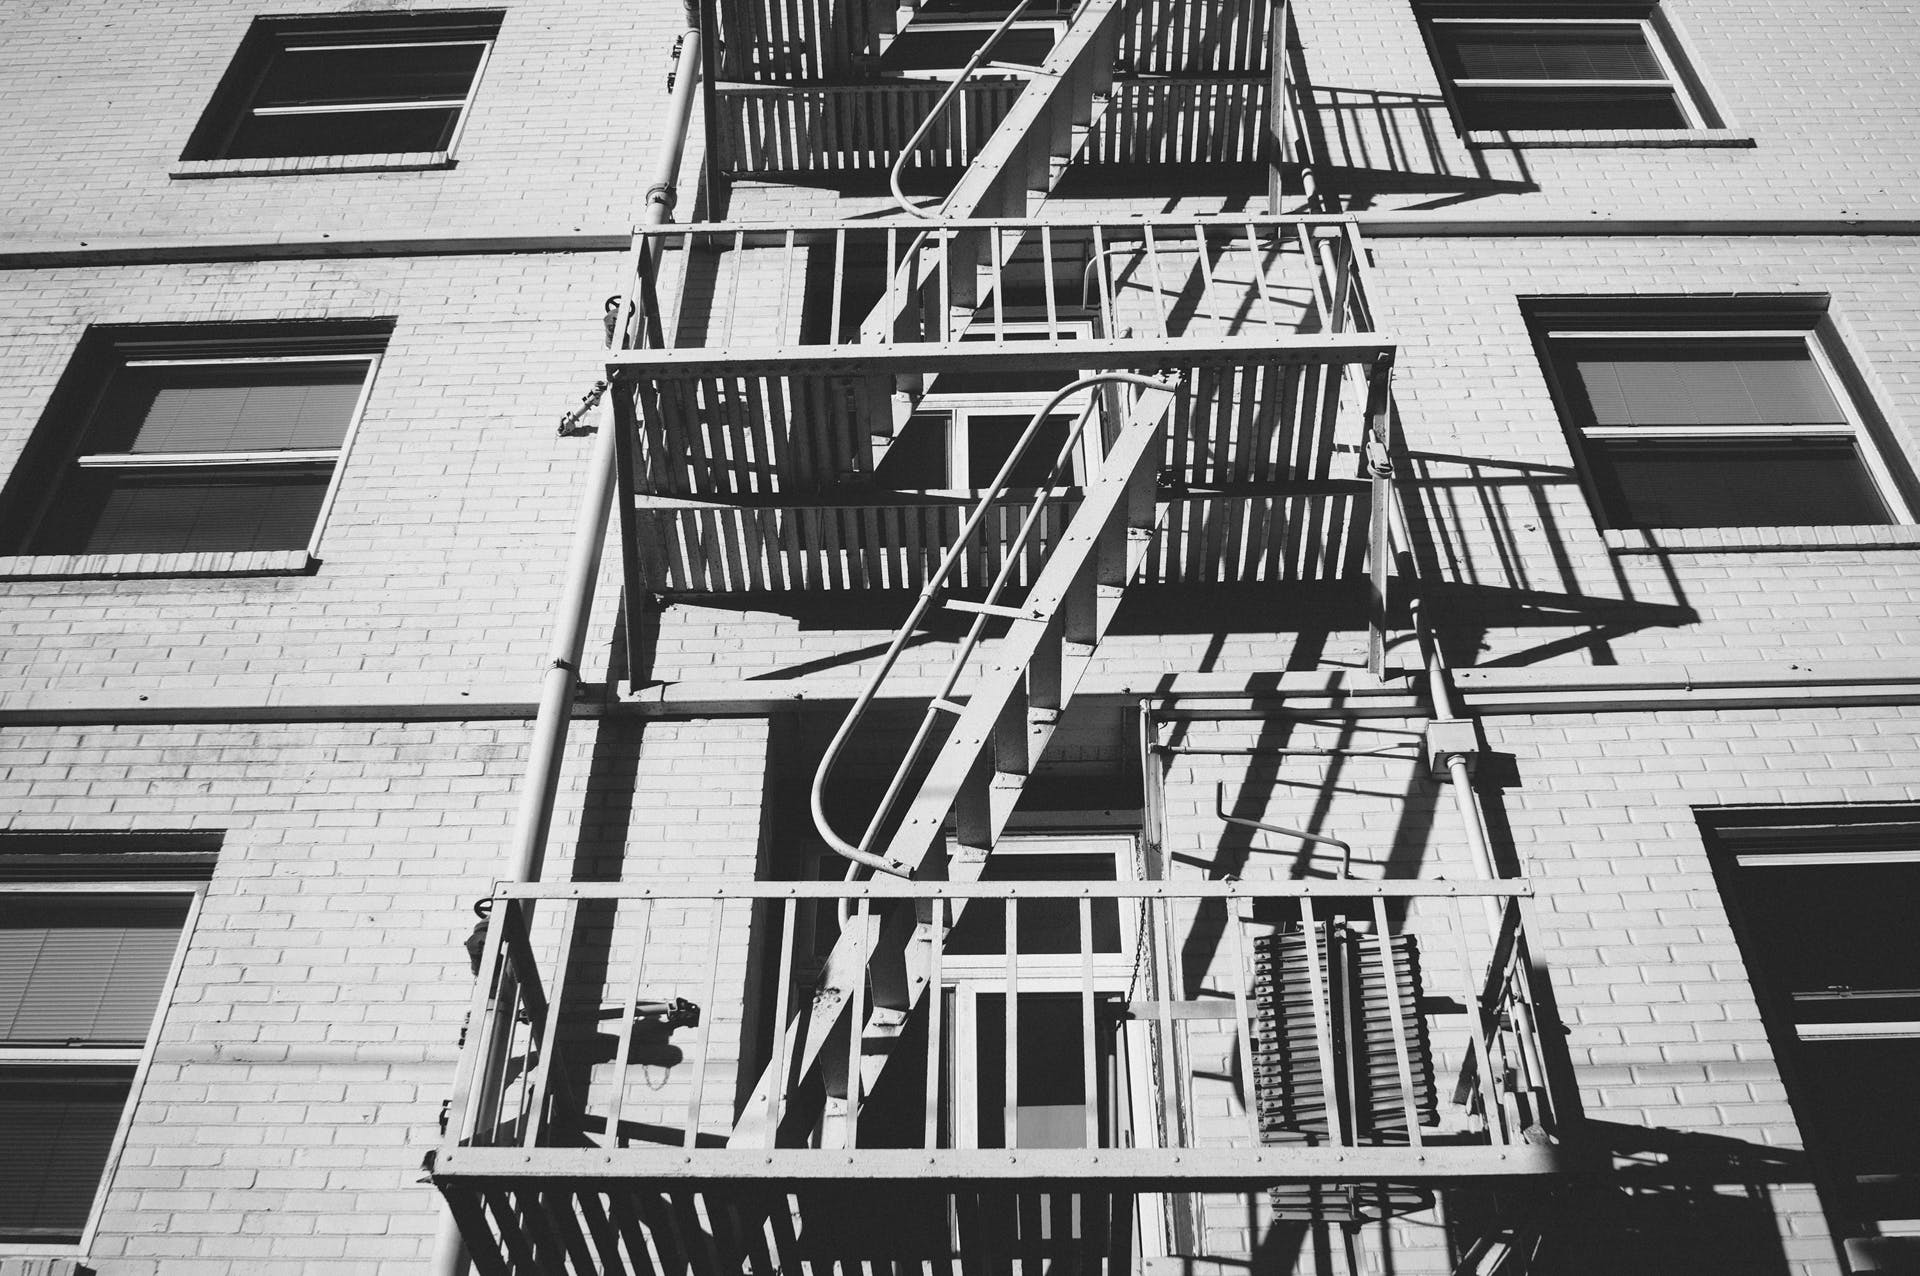 Grayscale Photo of Escape Stairs